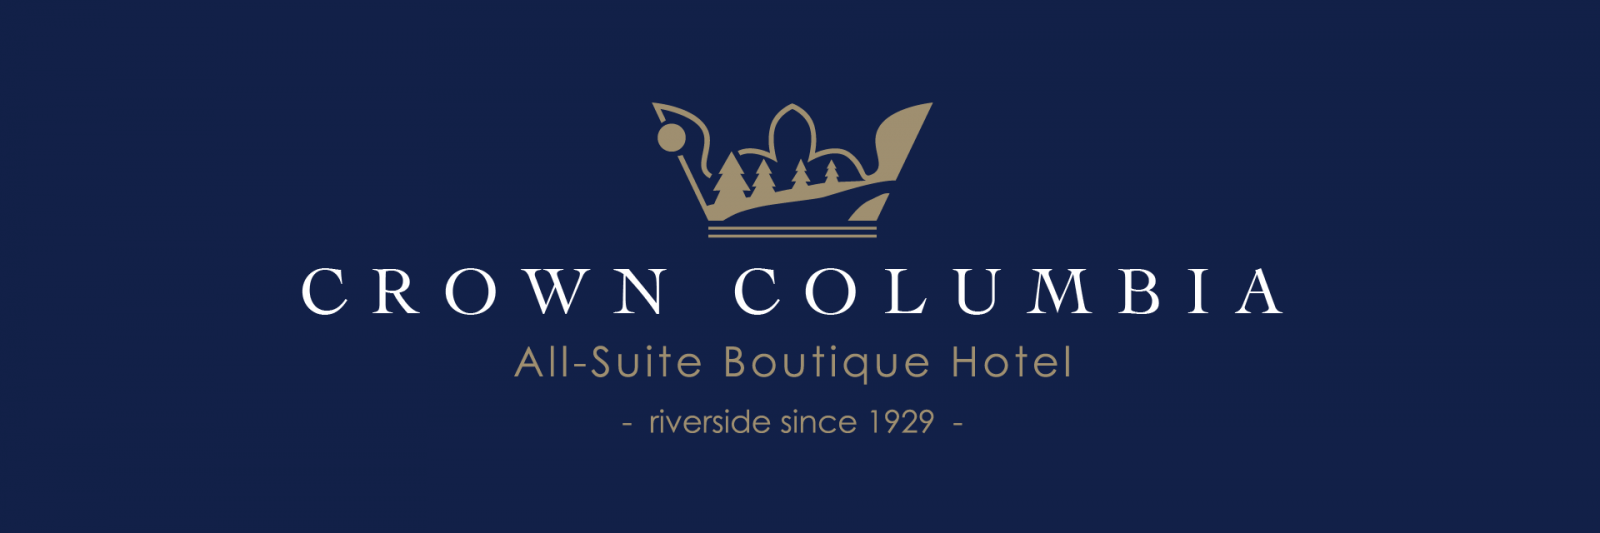 Crown Columbia